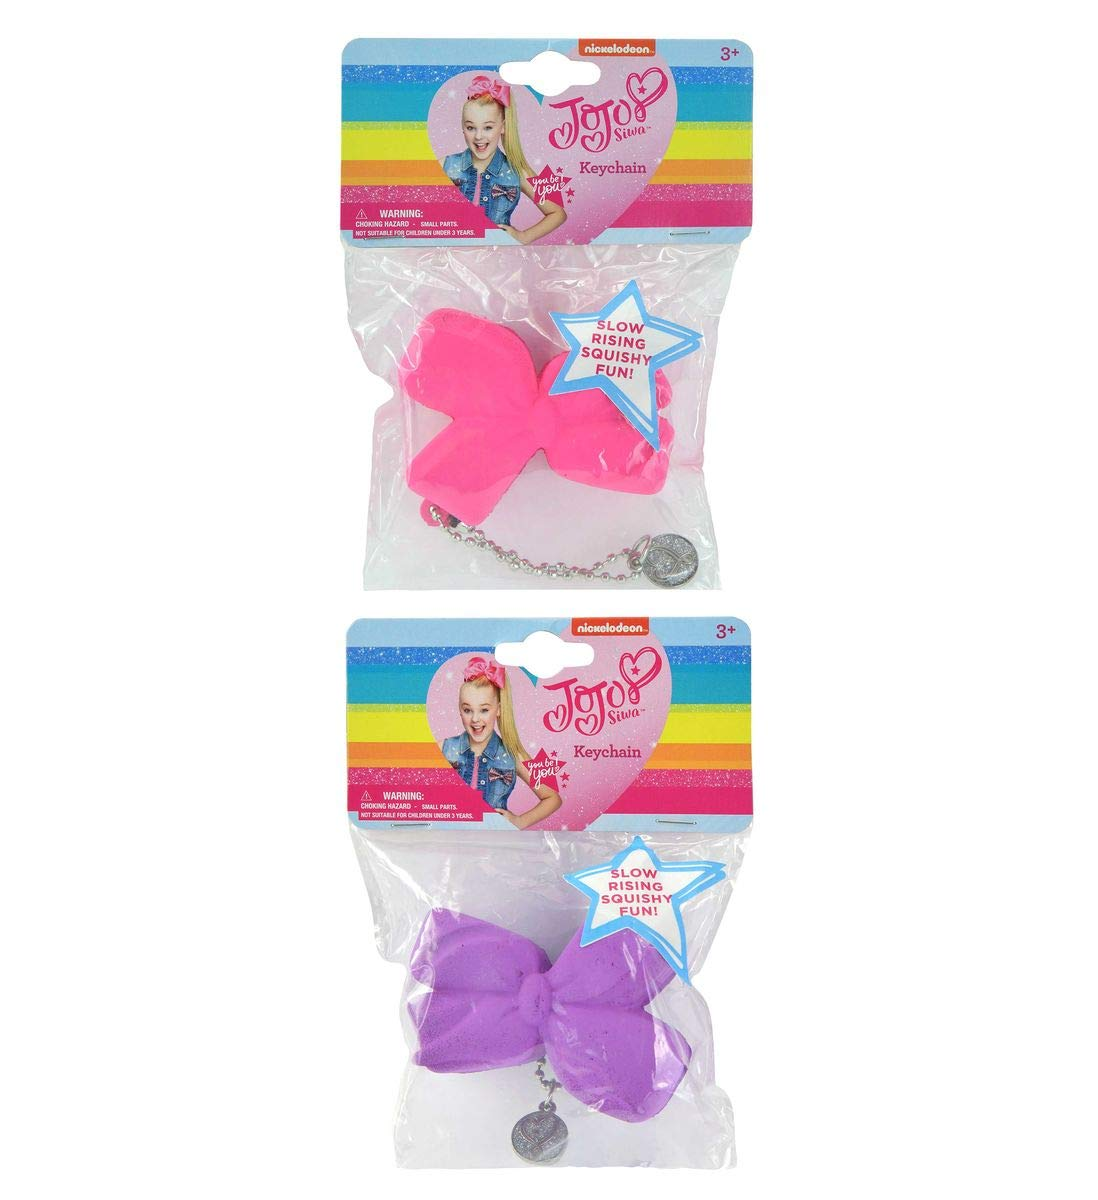 Mozlly Value Pack - JoJo Siwa Girls Rhinestone Pastel Signature Collection Hair Bow Clip and Slow Rising Squishy Hair Bow Keychains (2pc Set) (2 Items) by Mozlly (Image #3)